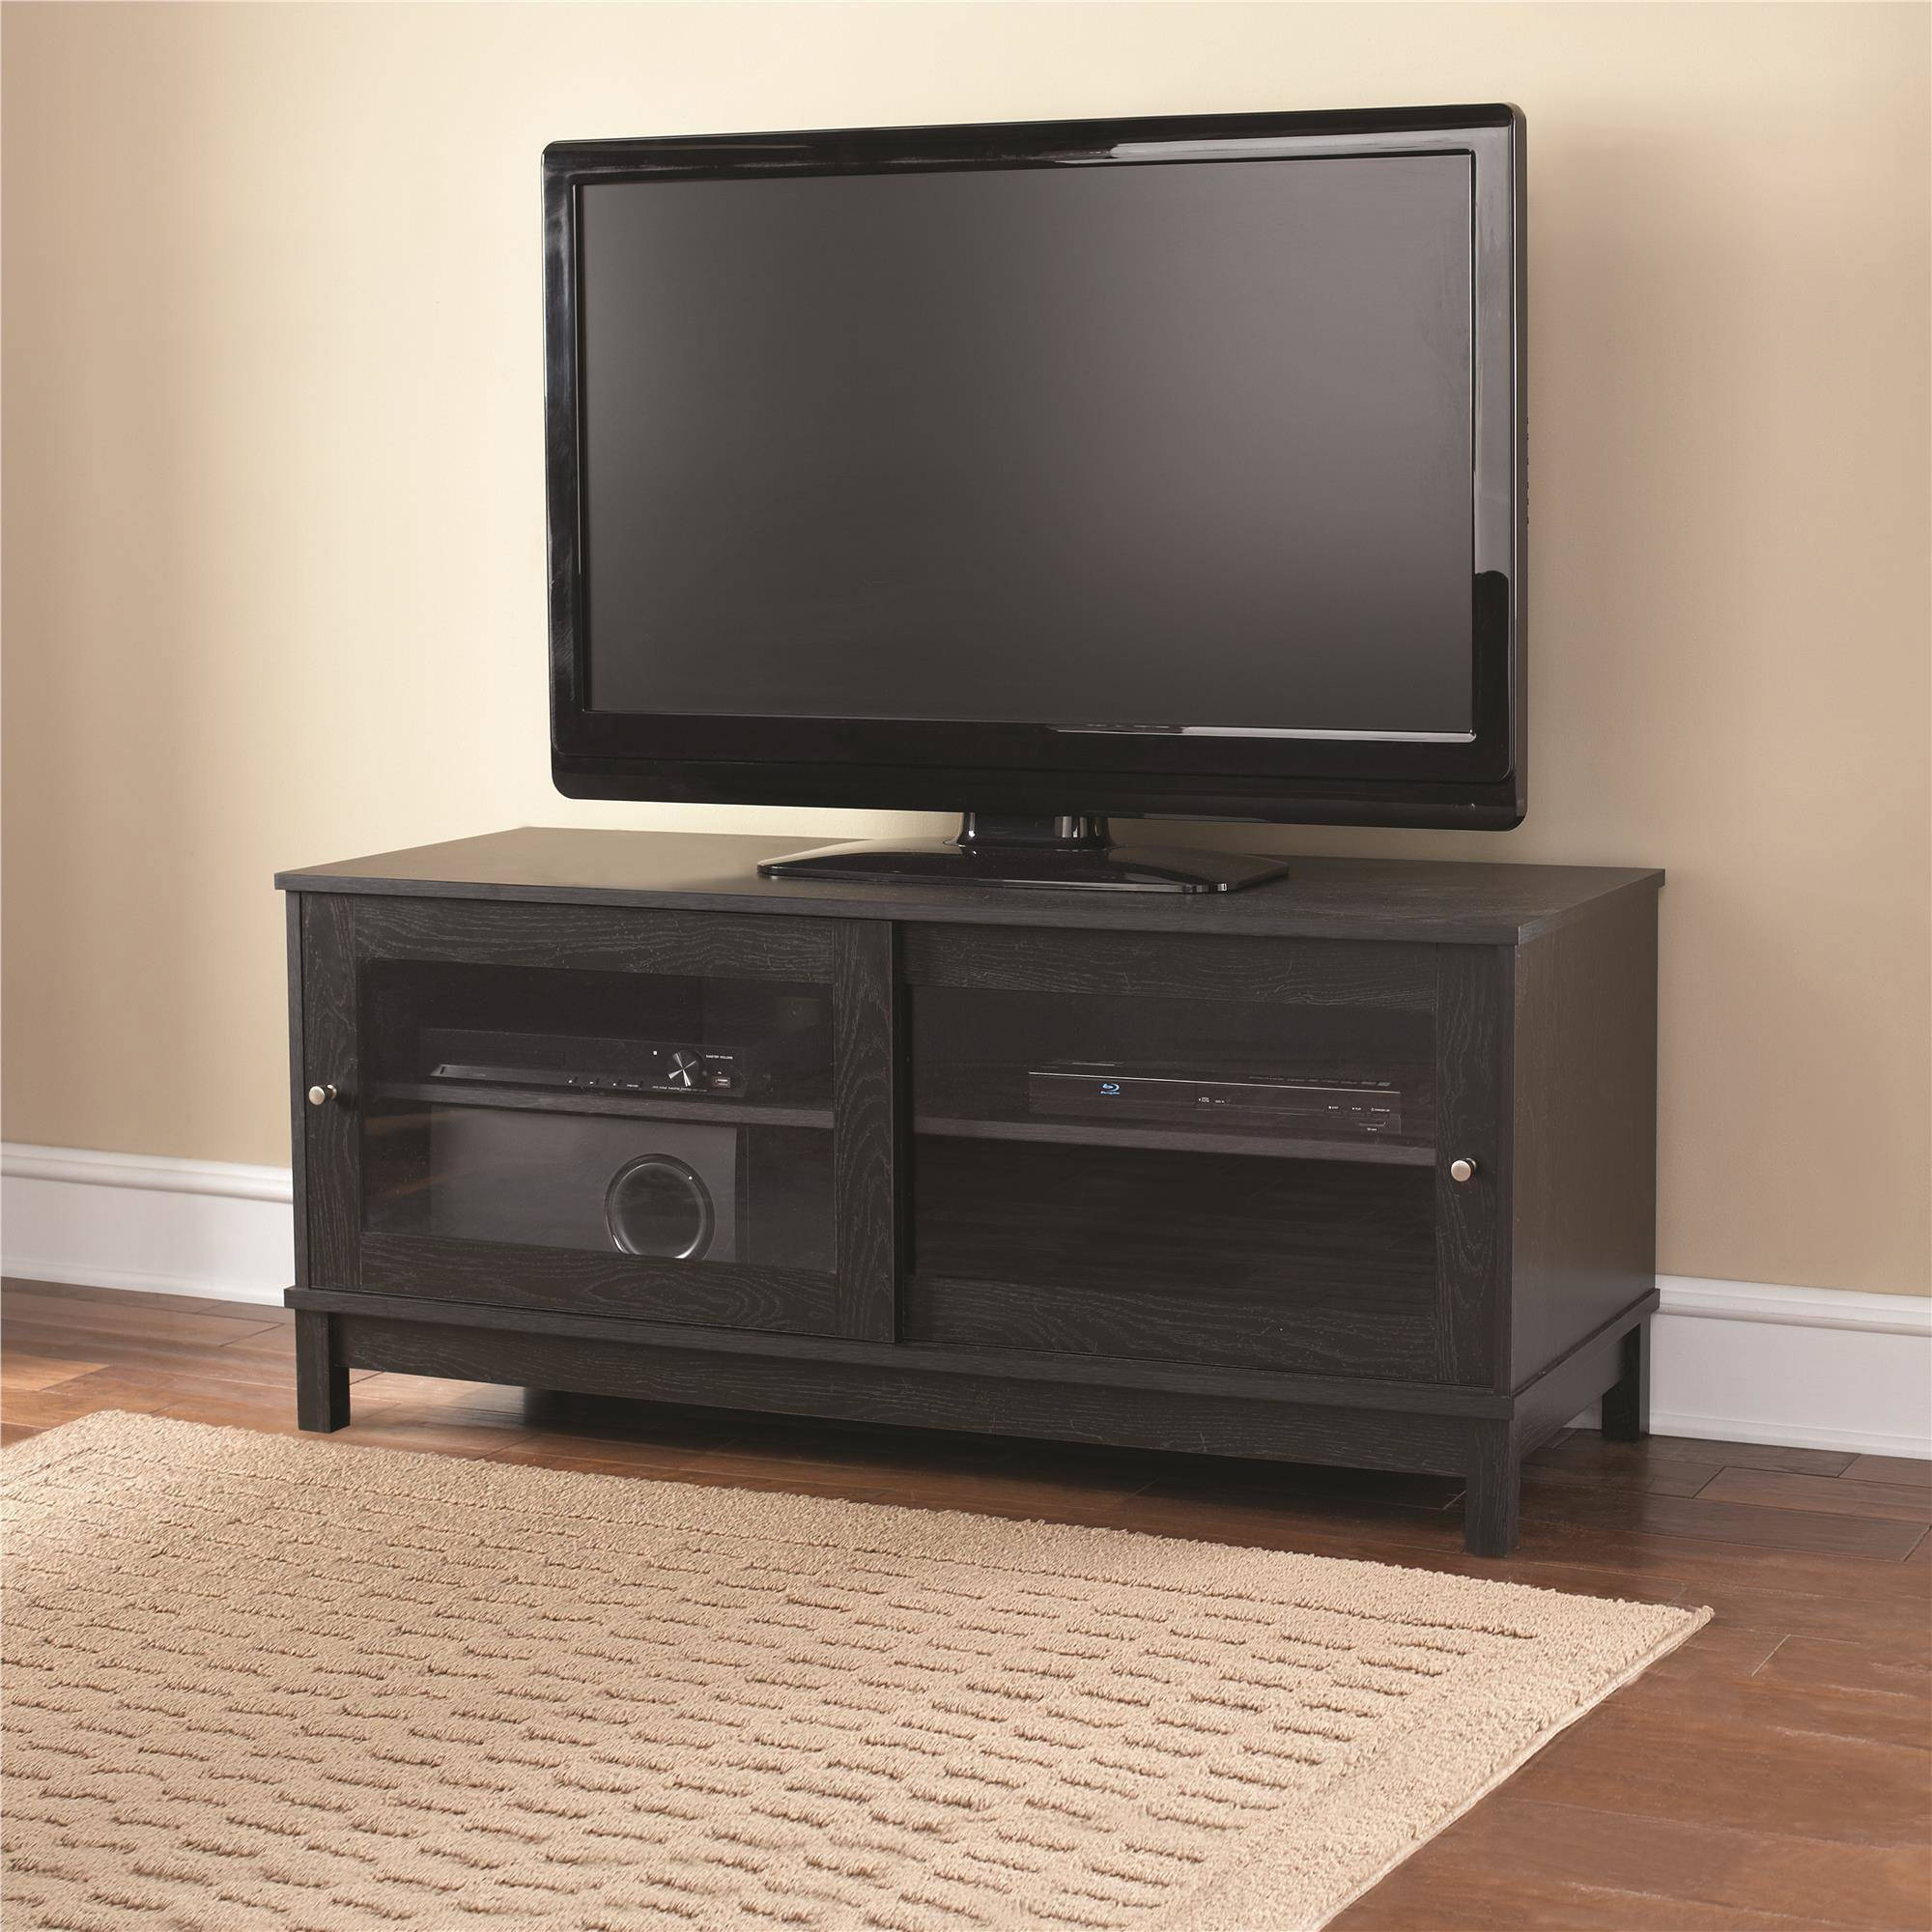 Tv Stand With Sliding Glass Doors For Tvs Up To 42Tv Stand With Sliding Glass Doors For Tvs Up To 42